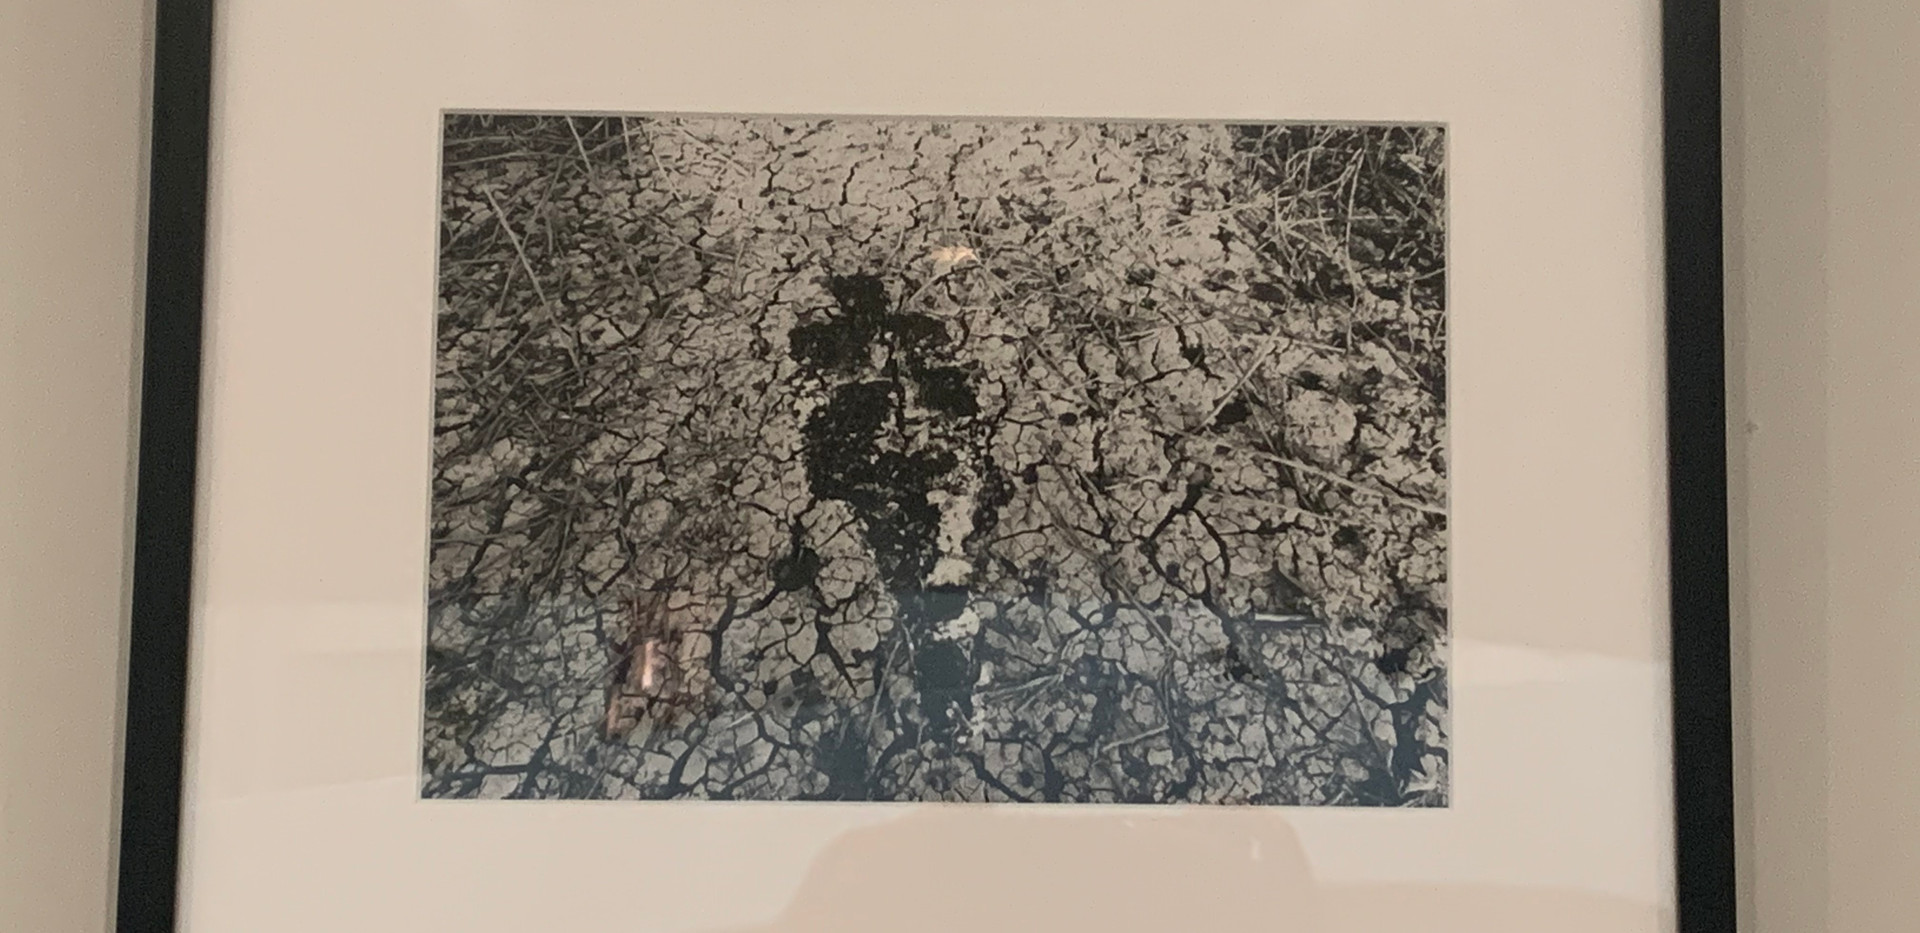 Ana Mendieta, Untitled: Silueta Series, 1978